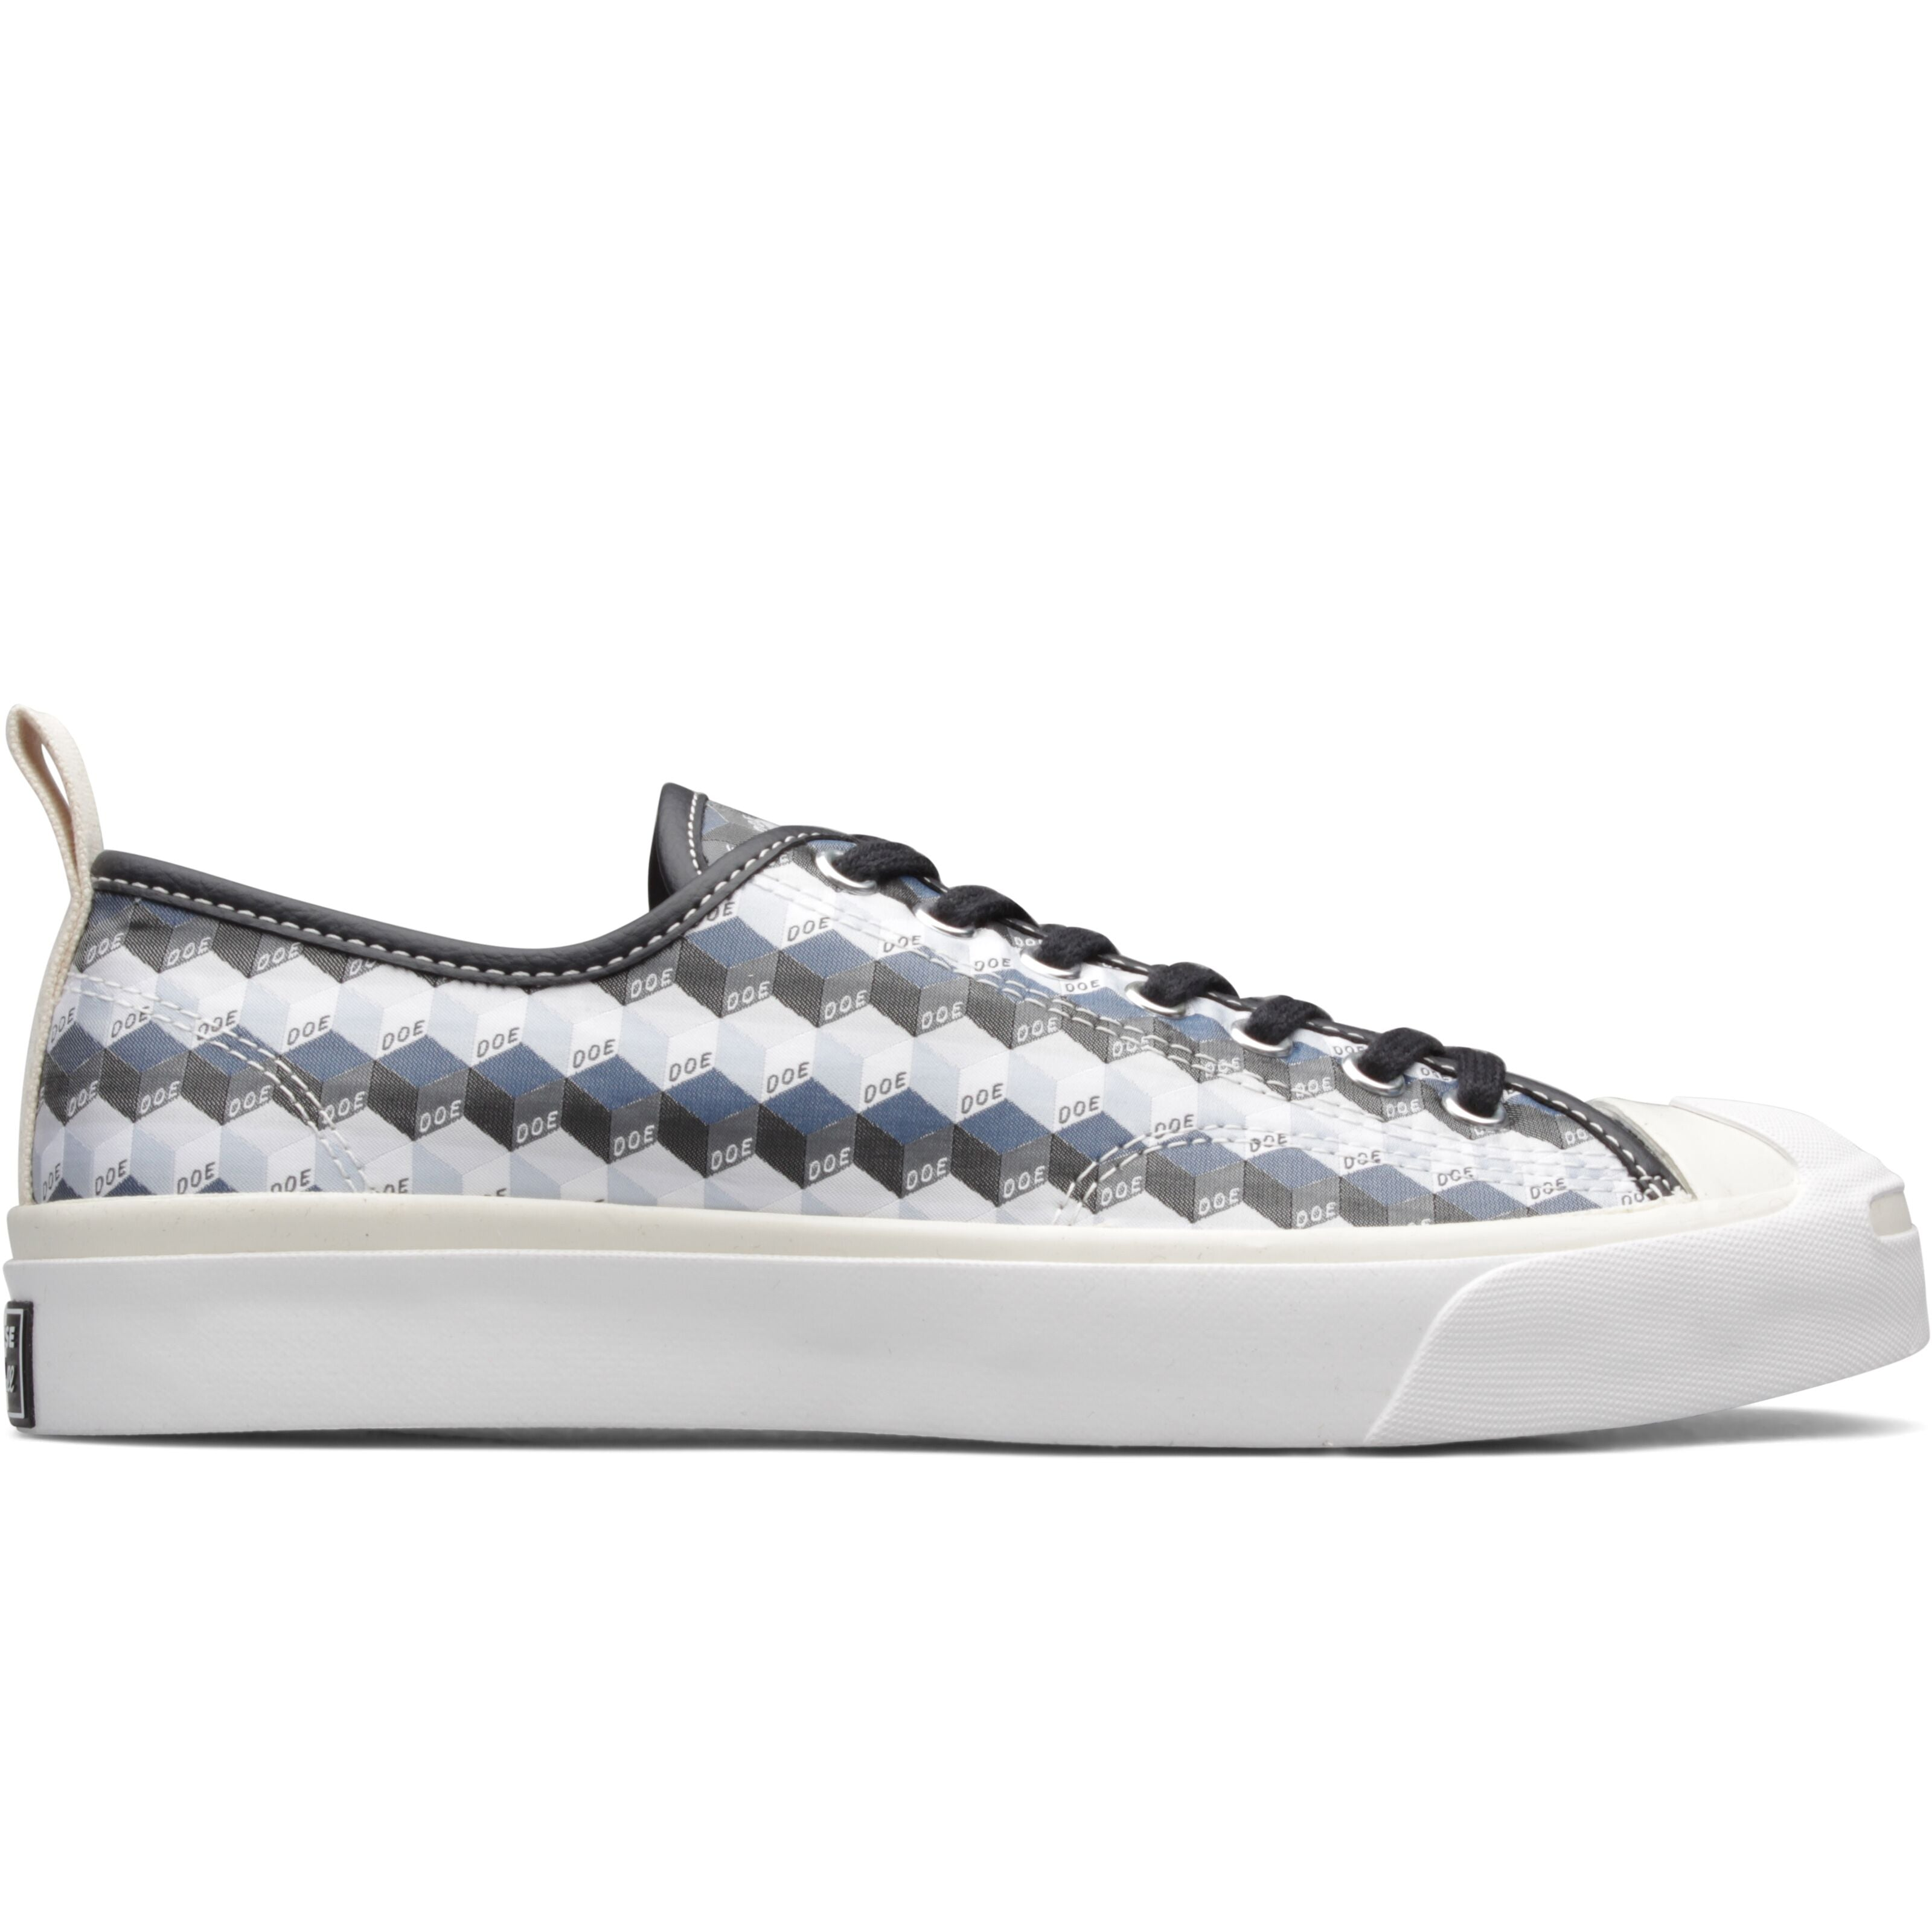 5024adaf311332 Converse x DOE Jack Purcell Ox NAVY WHITE EGRET 165550C Retail   100